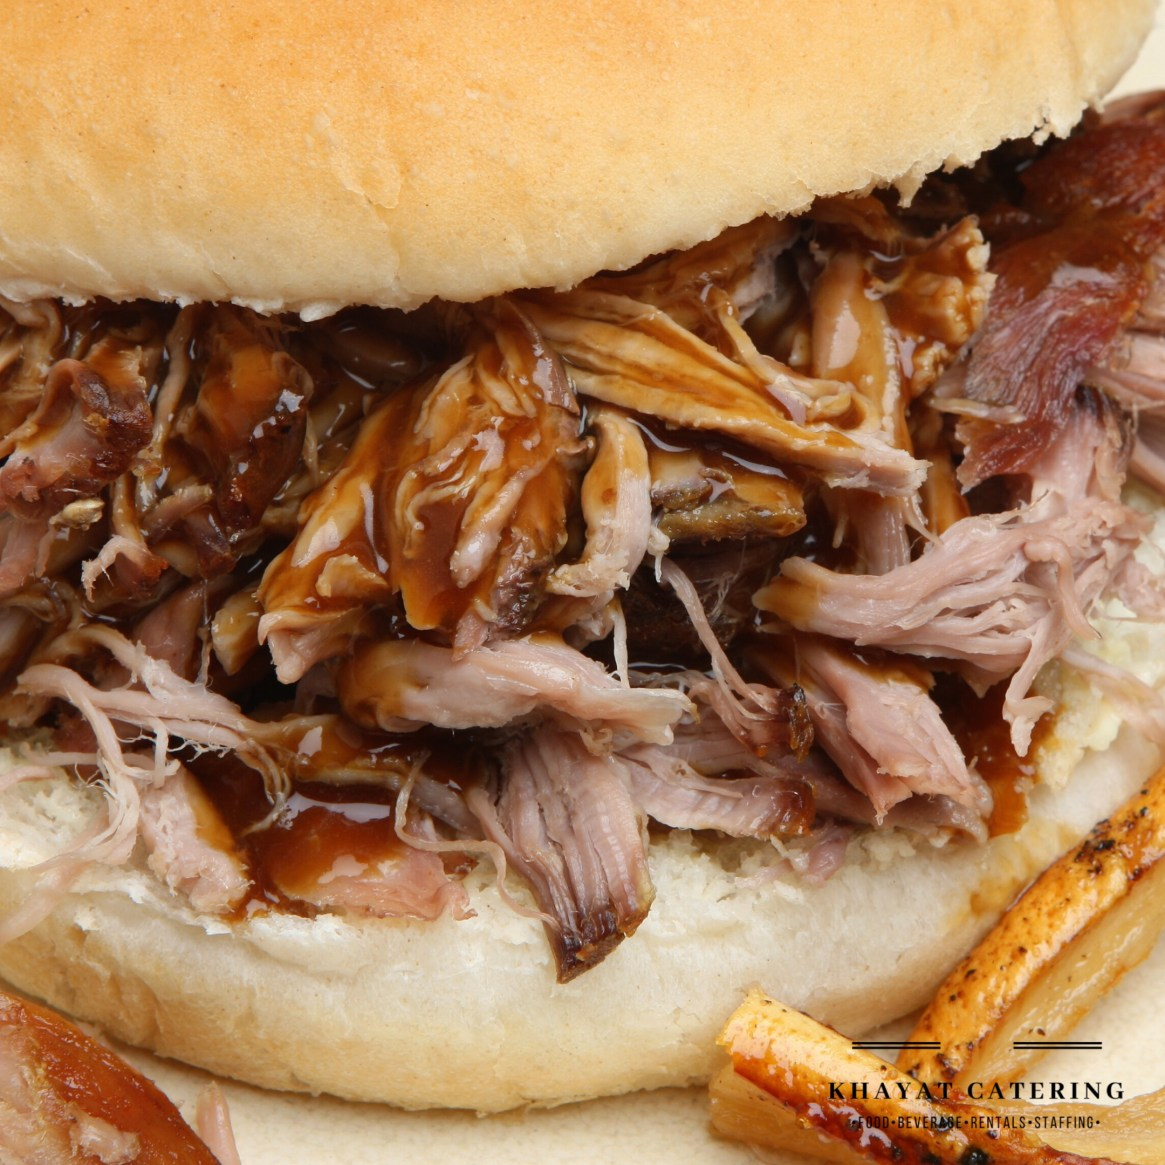 Khayat Catering pulled pork sandwich